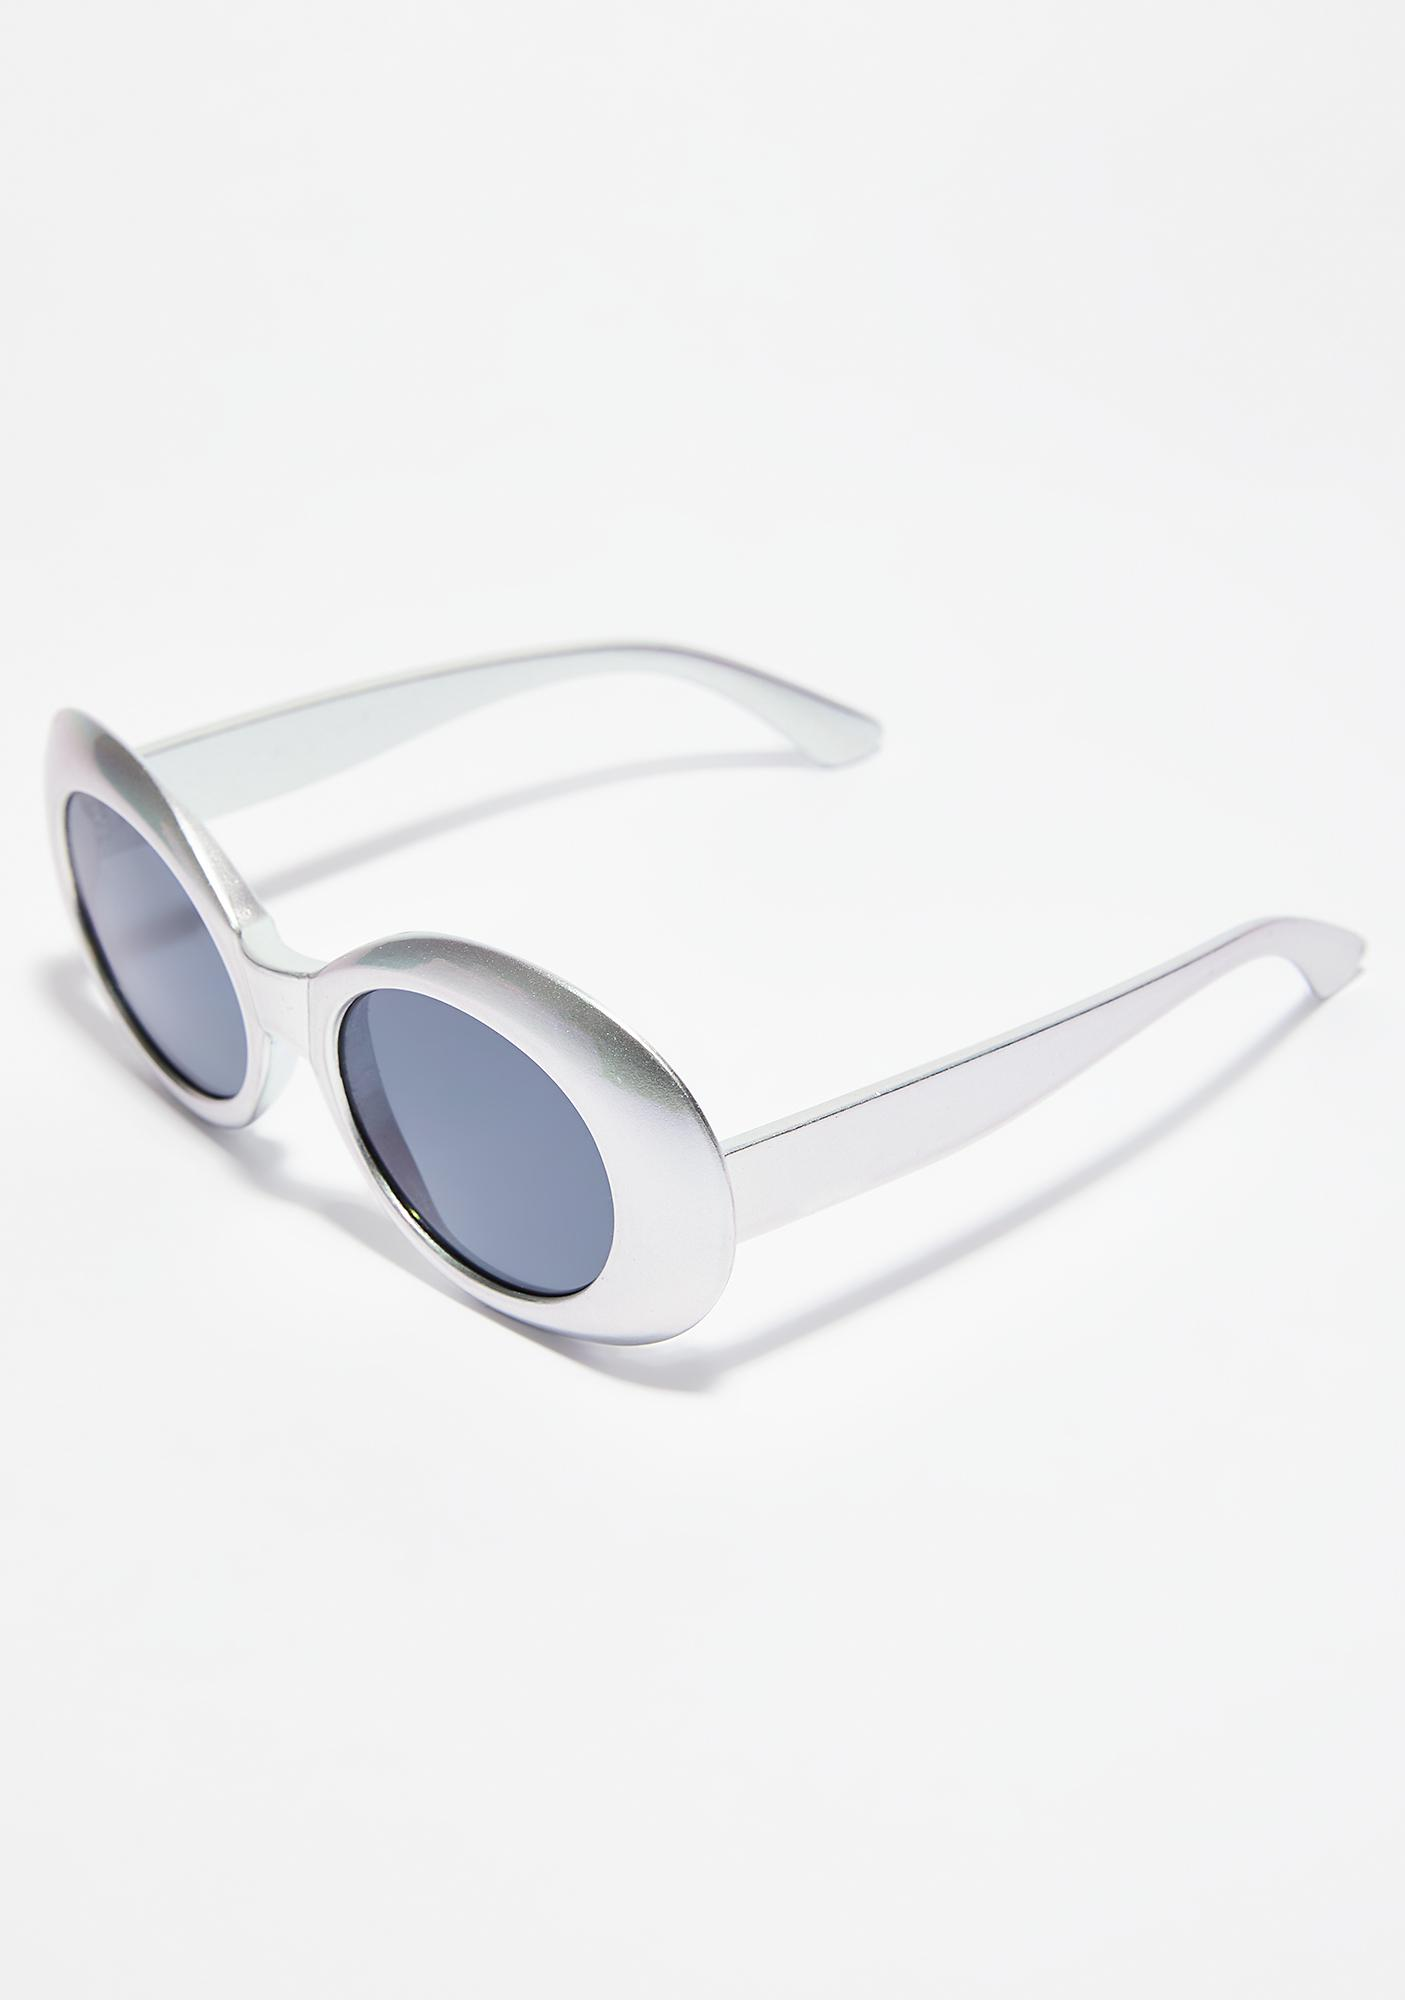 Chrome About A Girl Sunglasses